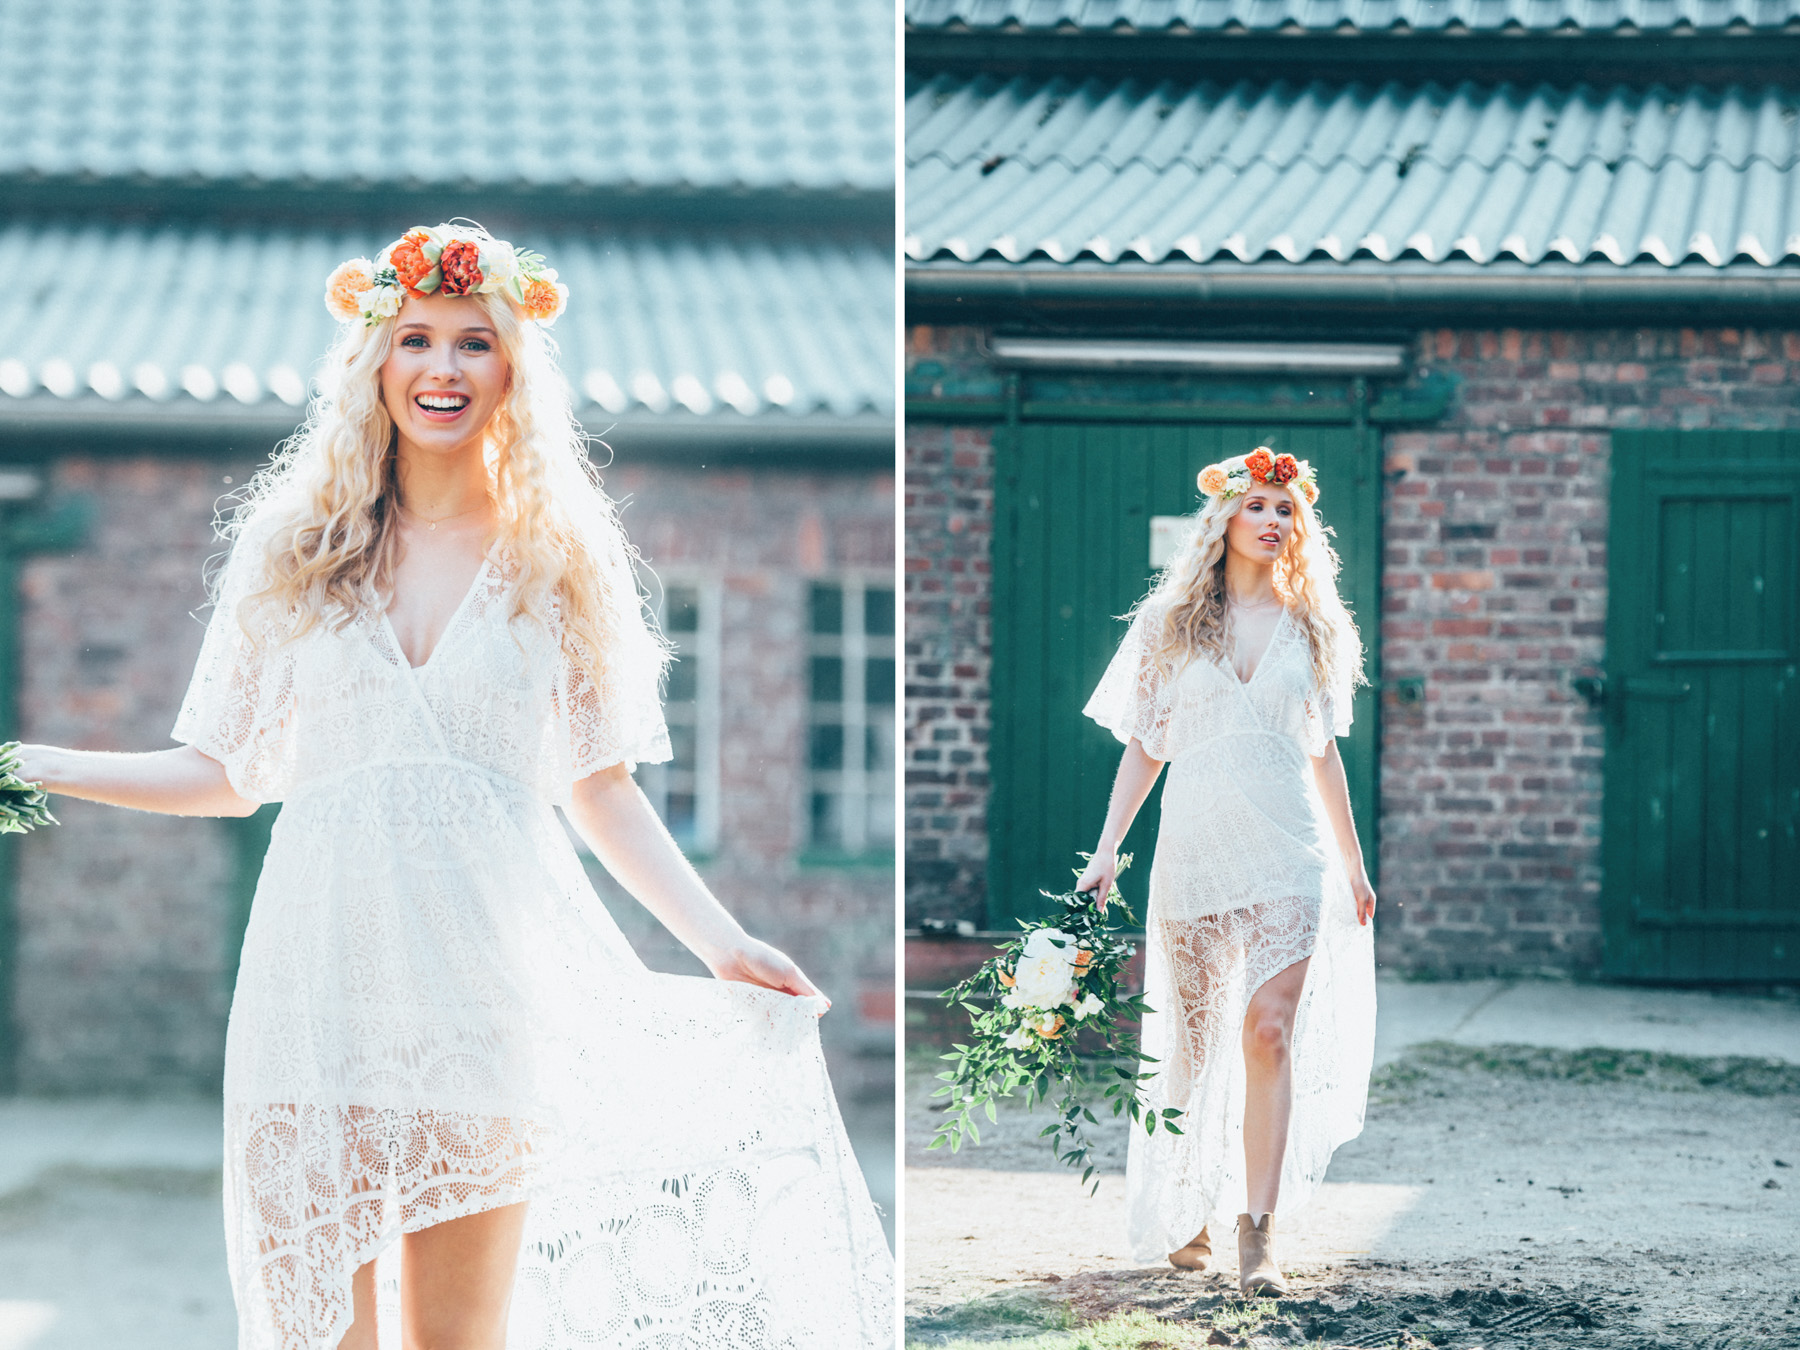 bohemian-hippie-wedding-17 Boho-Hippie Bride Styleshooting auf dem Ponyhofbohemian hippie wedding 17